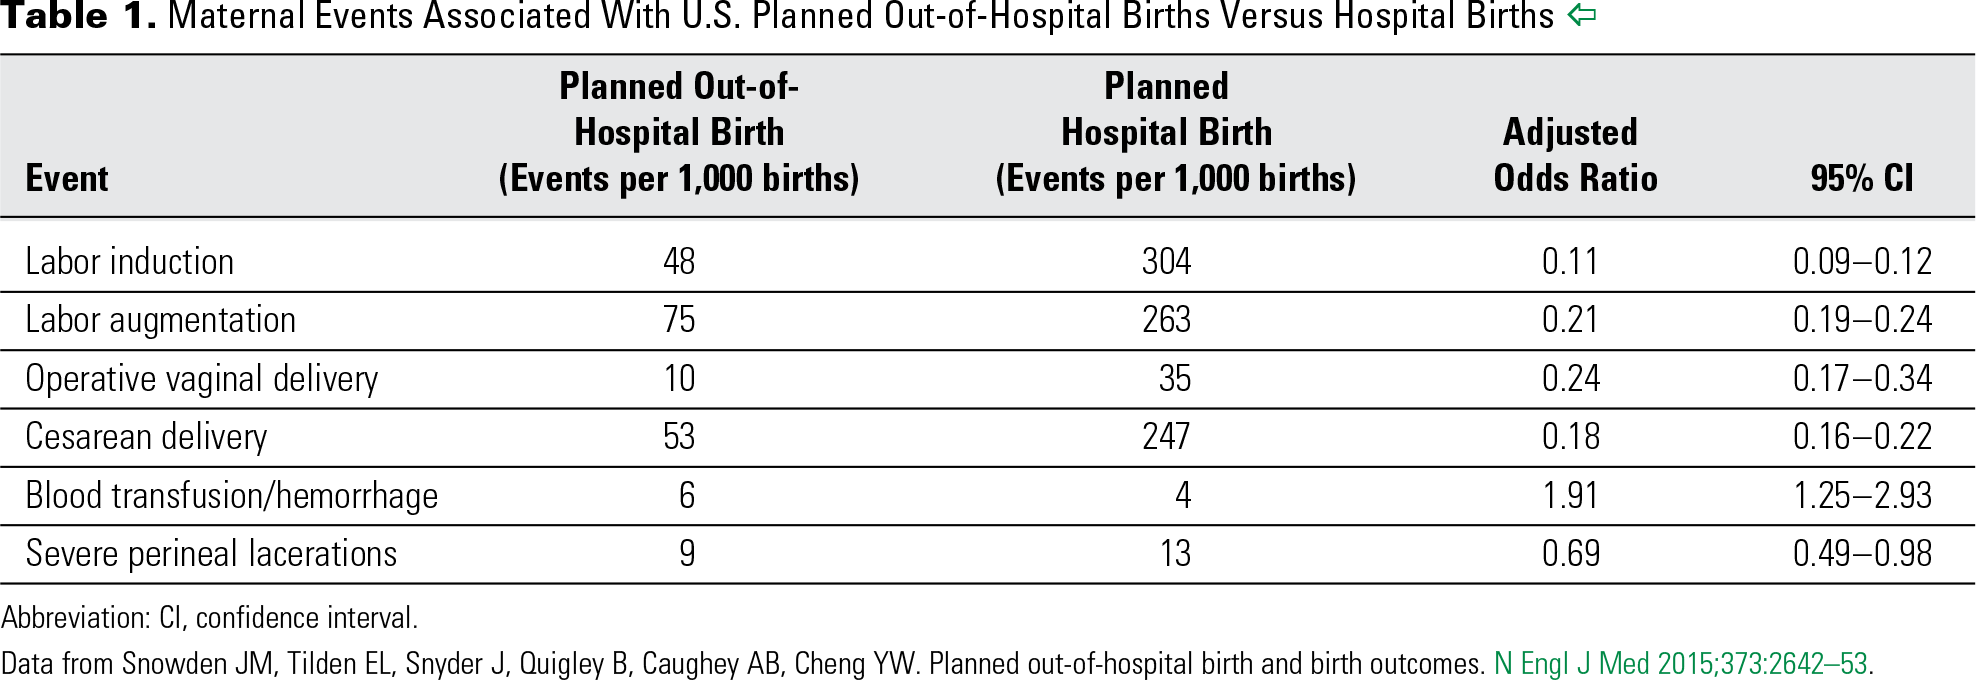 Table 1. Maternal Events Associated With U.S. Planned Out-of-Hospital Births Versus Hospital Births